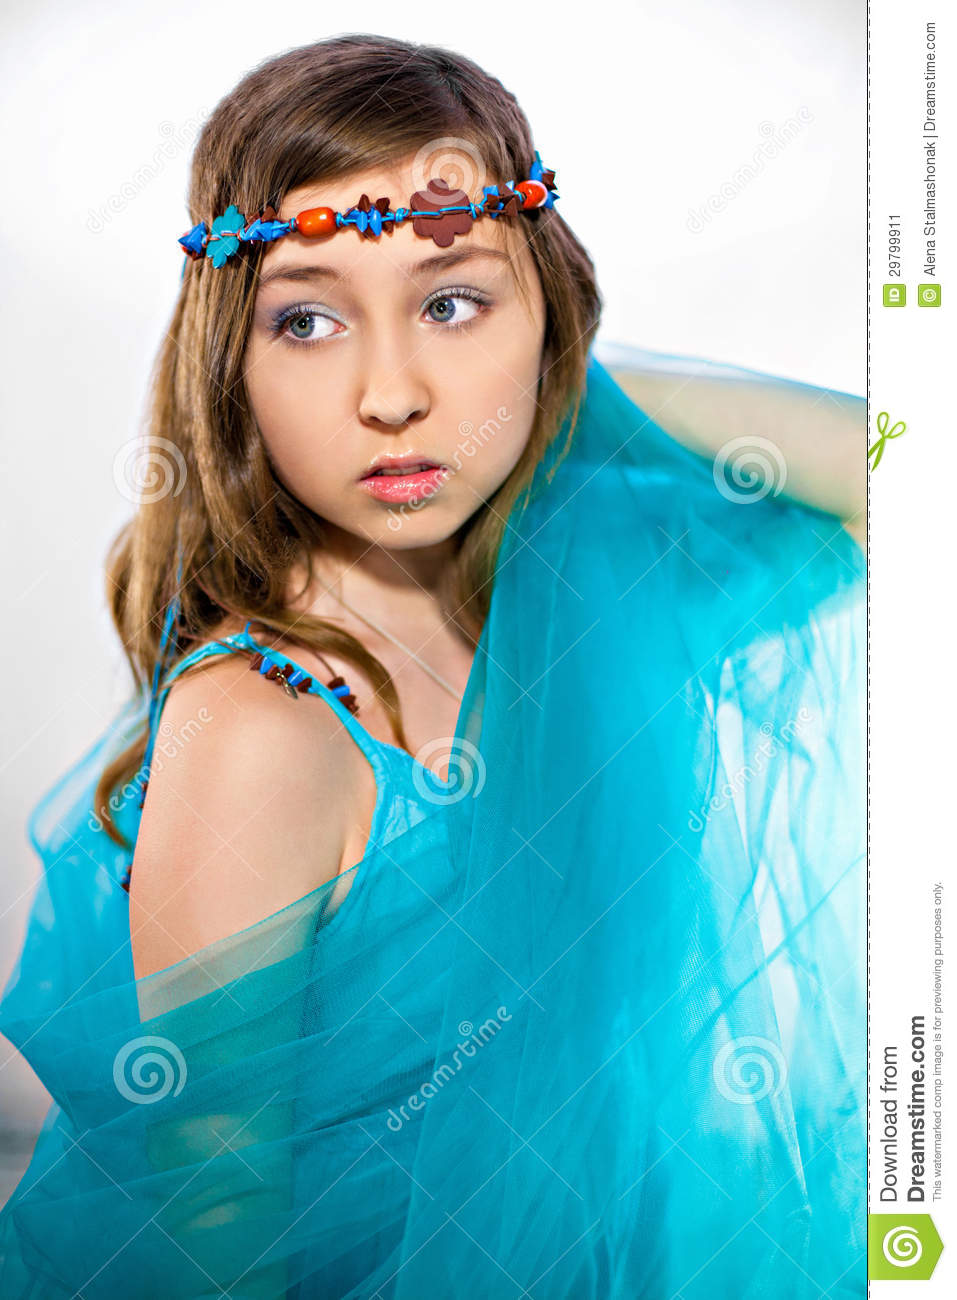 Beauty In Turquoise Stock Image. Image Of Happy, Hair